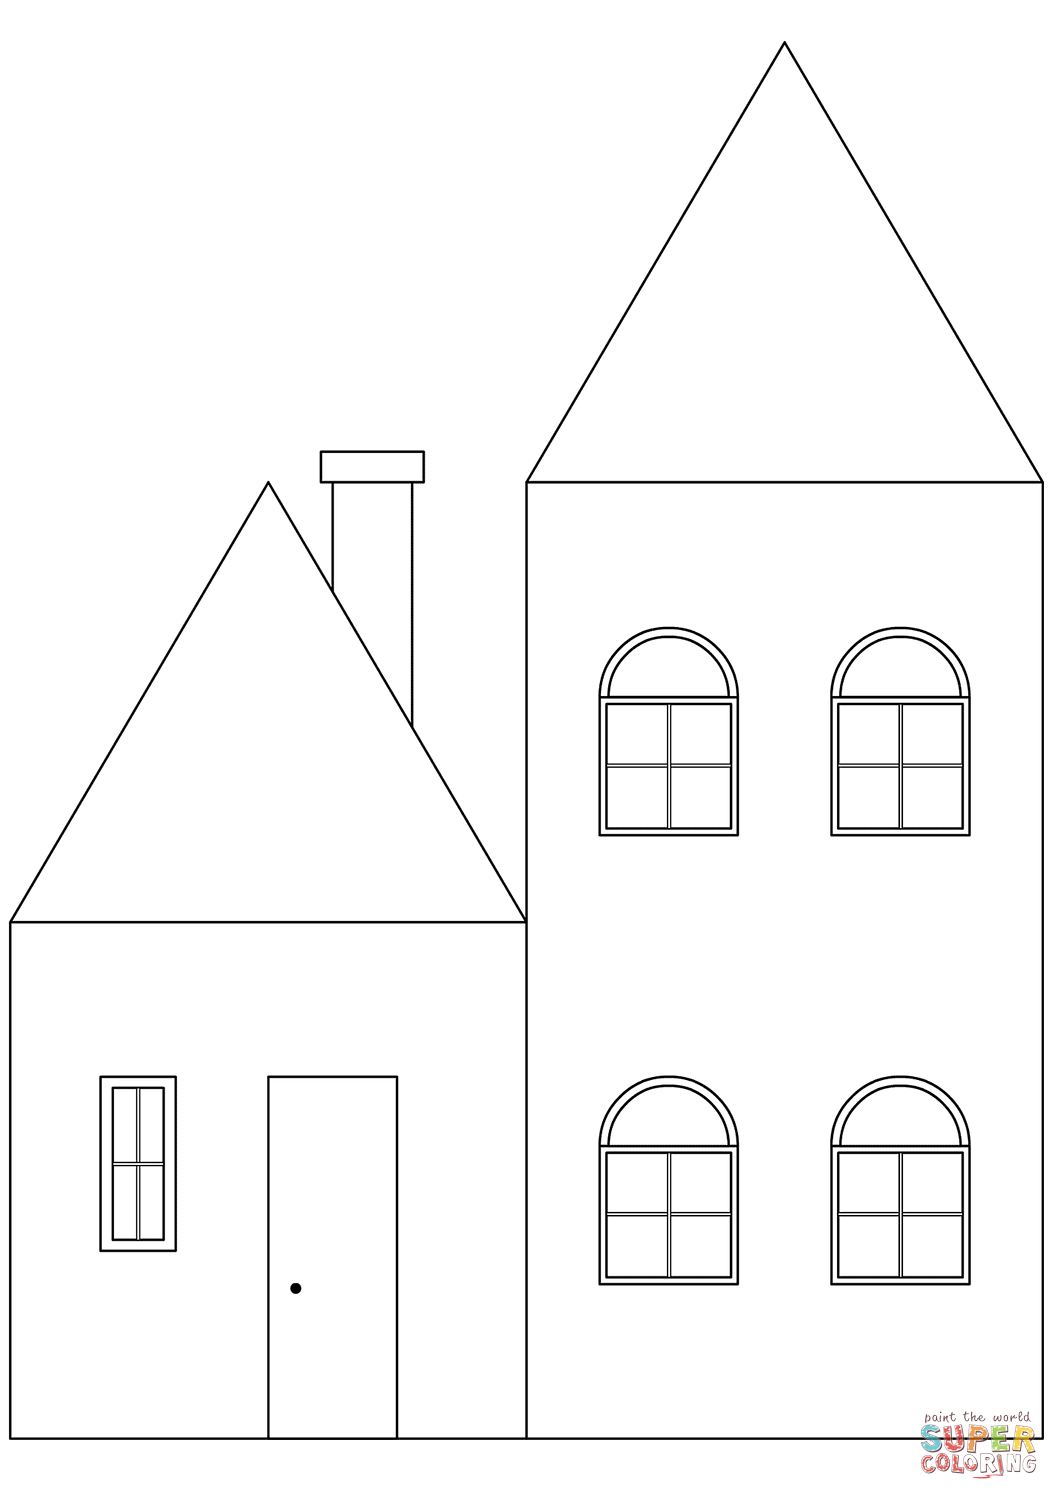 coloring worksheets house house coloring pages to download and print for free coloring worksheets house